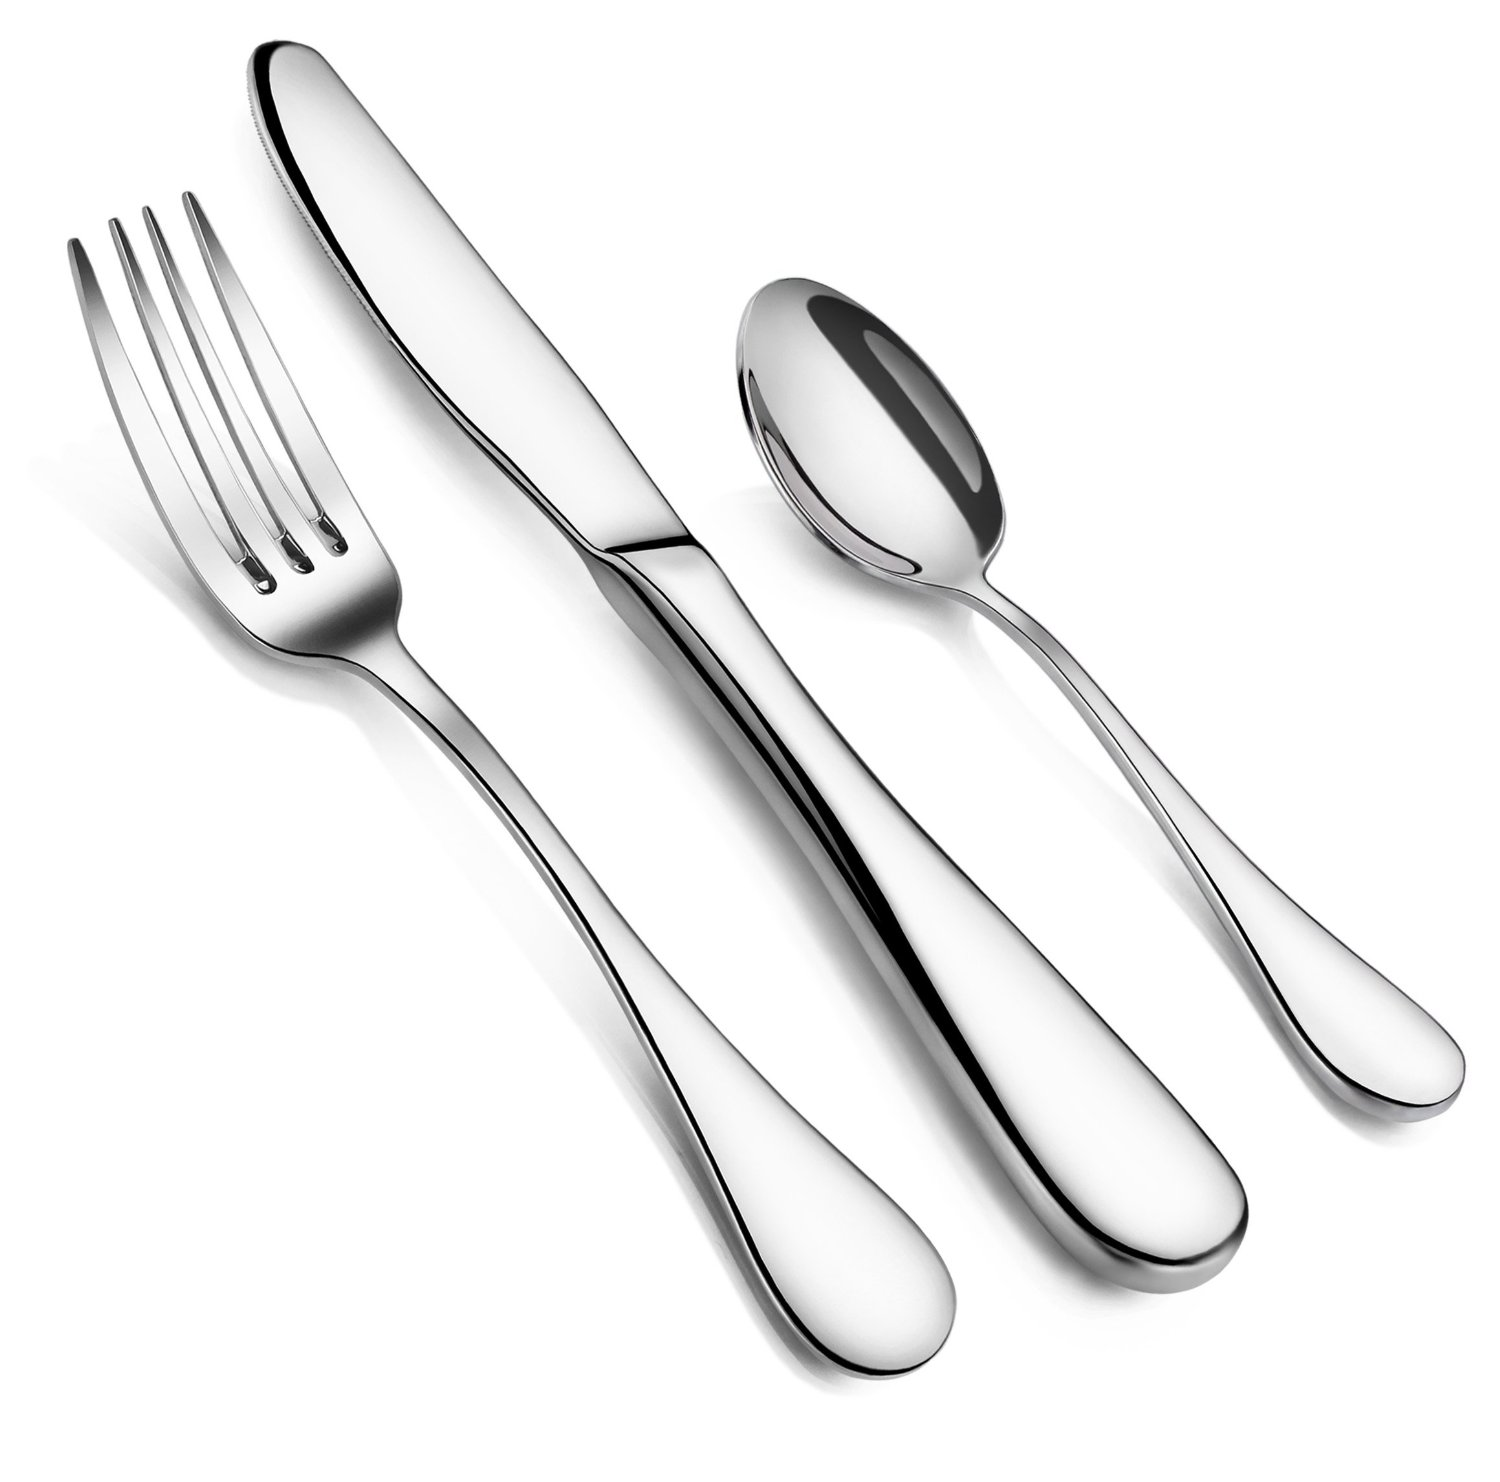 Spoons Forks Knives Set Top 10 Best Silverware Sets 2017 Top Value Reviews